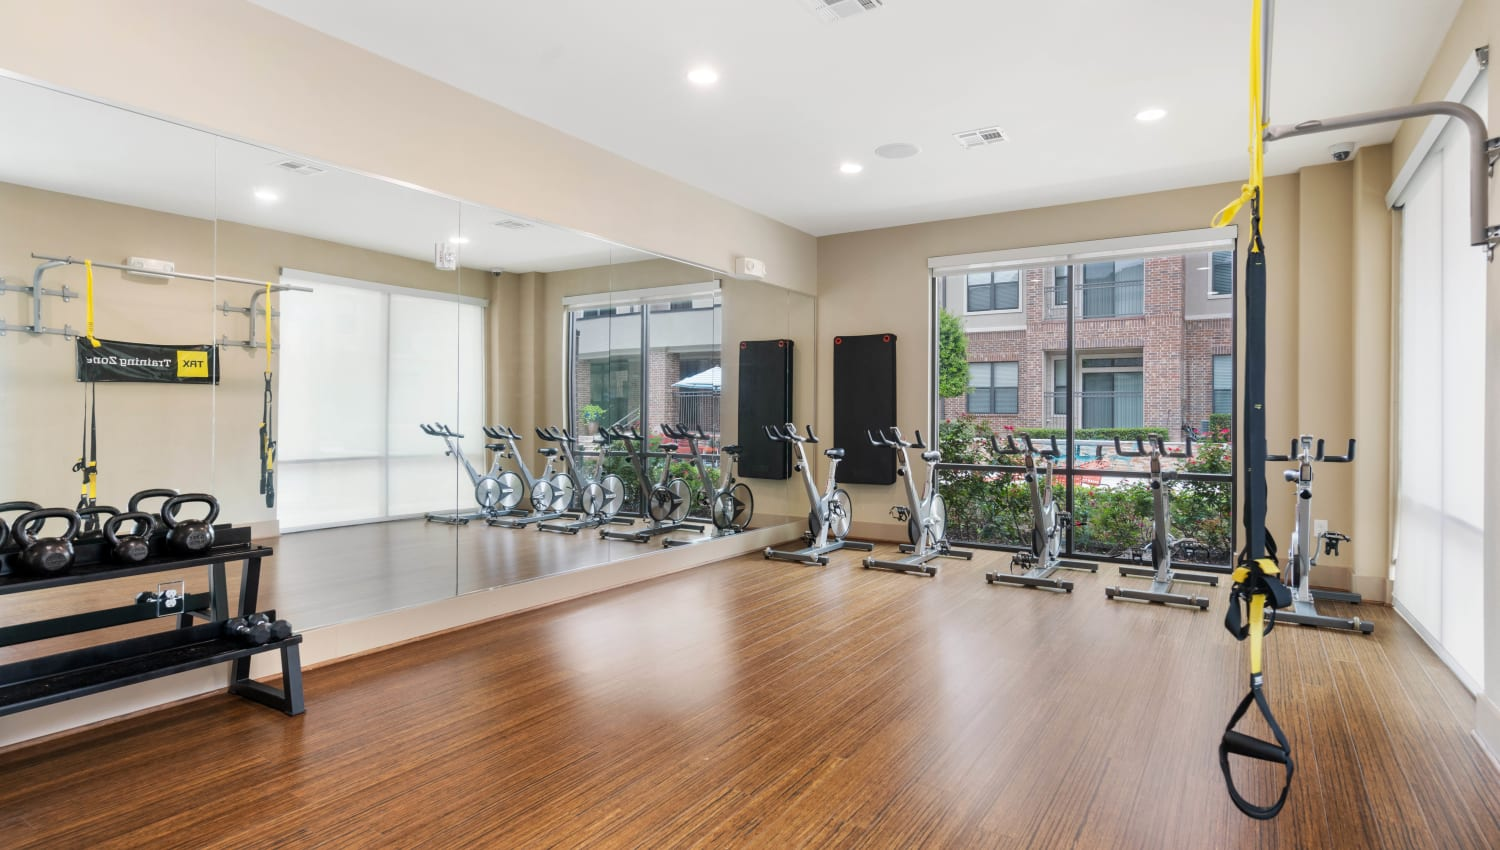 Spin class and yoga room in the fitness center at Olympus Sierra Pines in The Woodlands, Texas